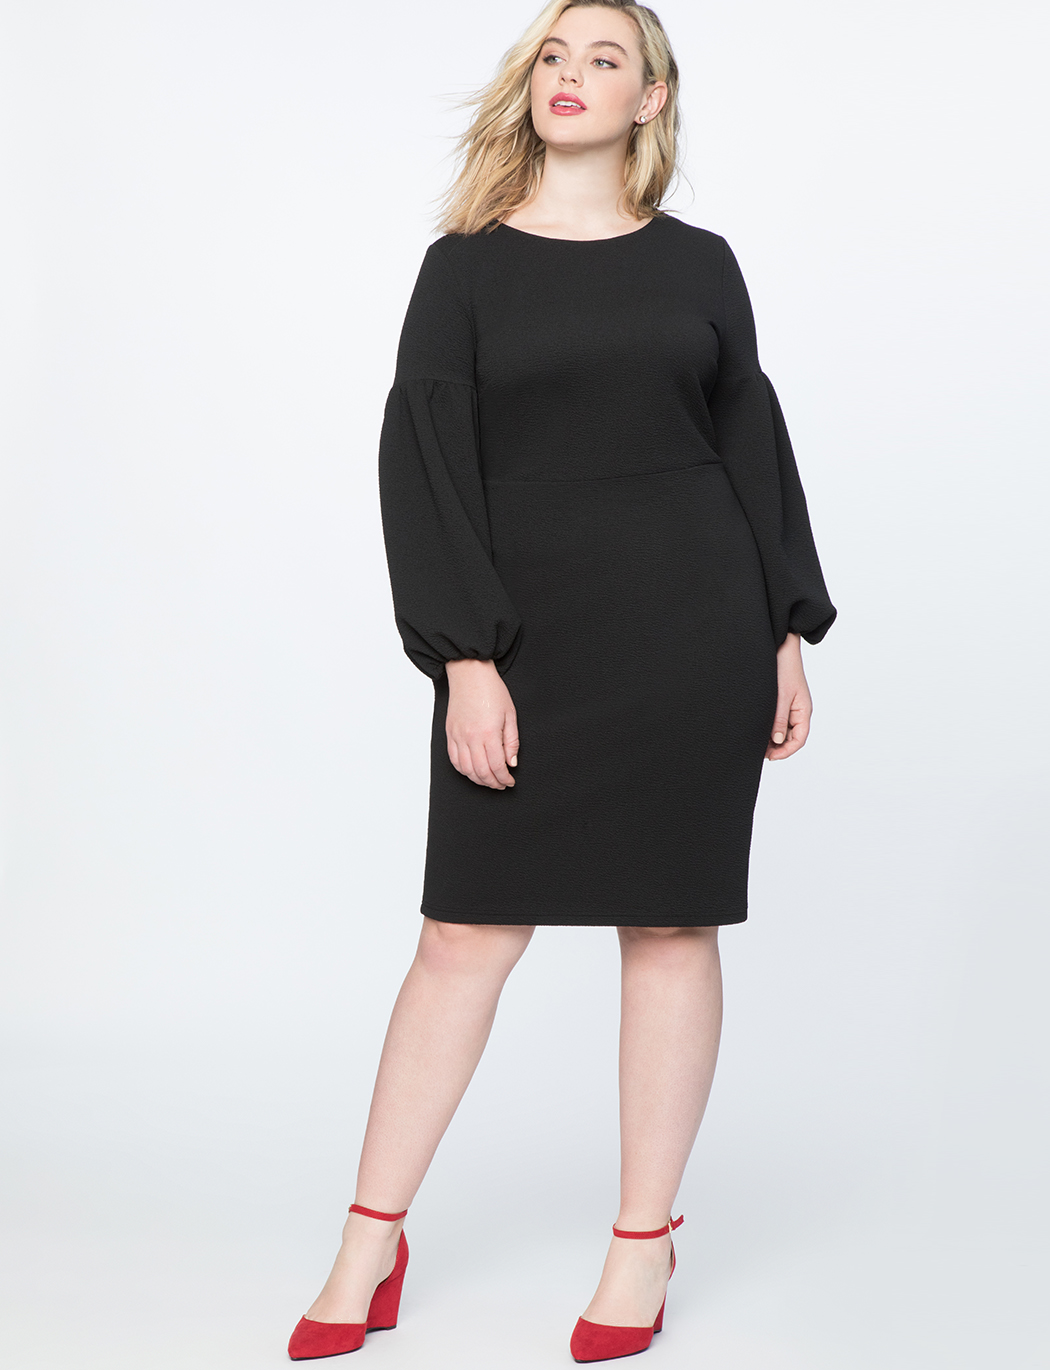 Puff Sleeve Bodycon Dress 6